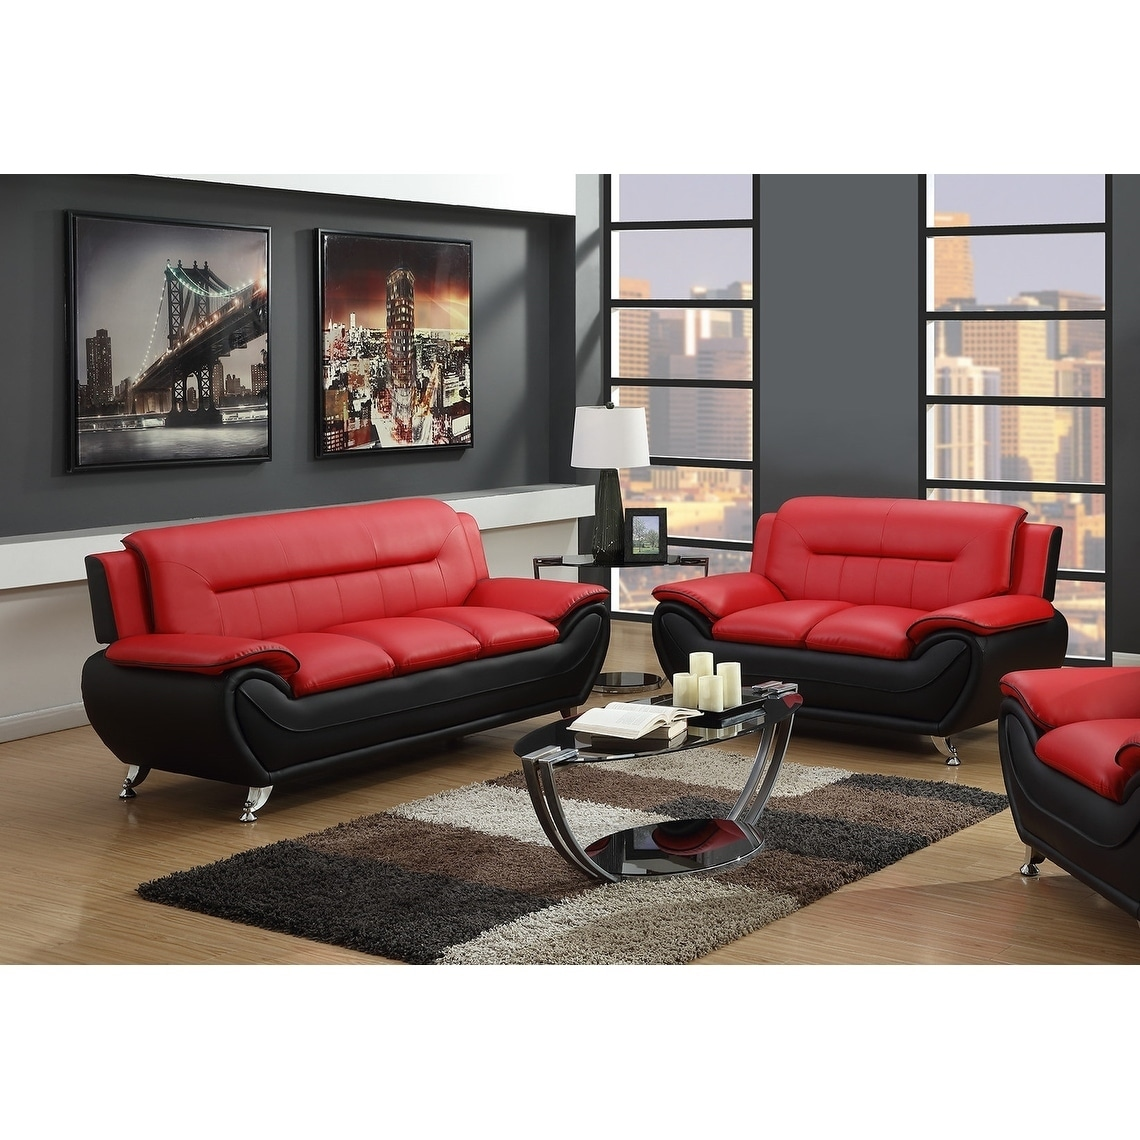 2Pc Red On Black Sofa & Loveseat Set